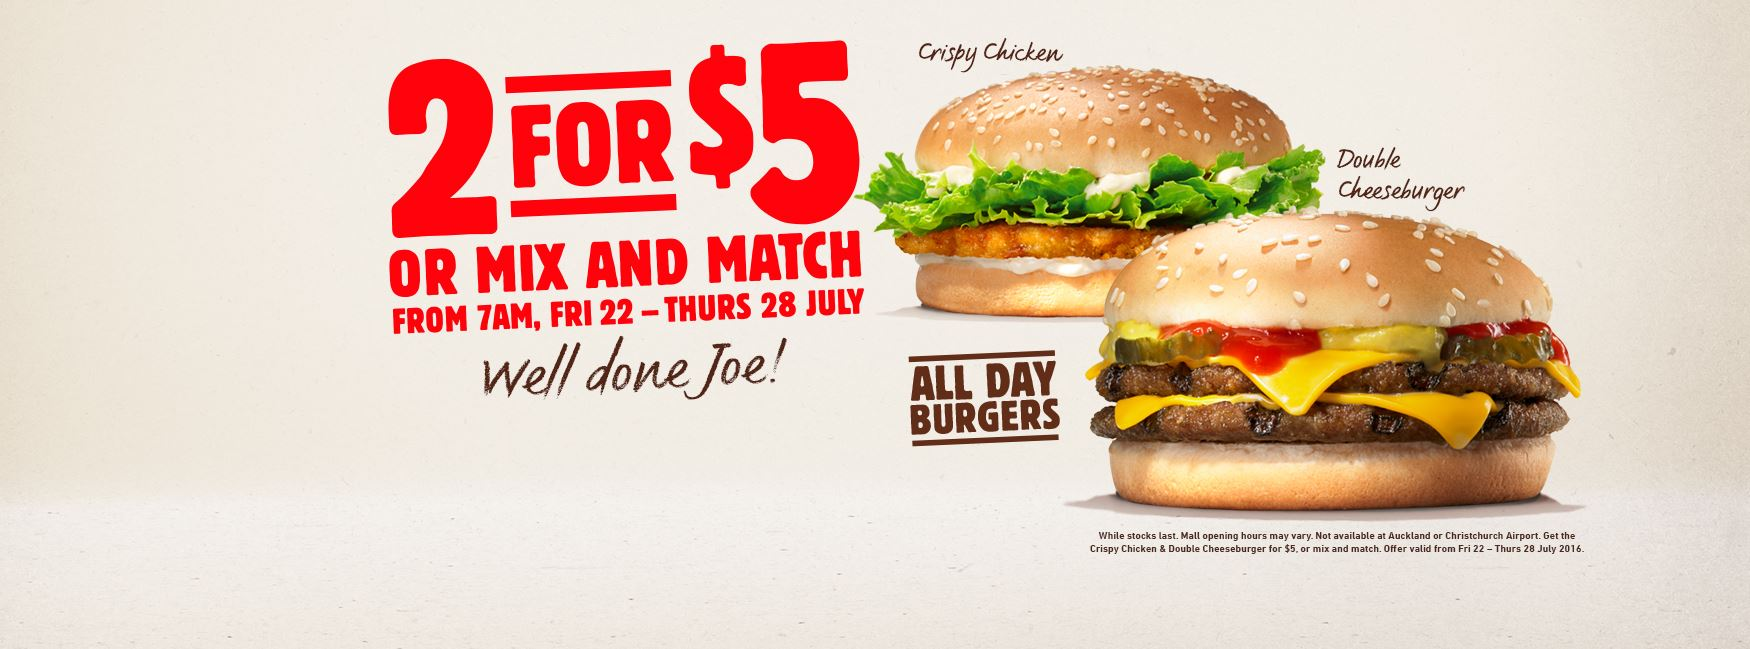 Deal Burger King Nz 2 For 5 Double Cheeseburger Or Crispy Chicken Until 28 July 2016 Cheap Feeds